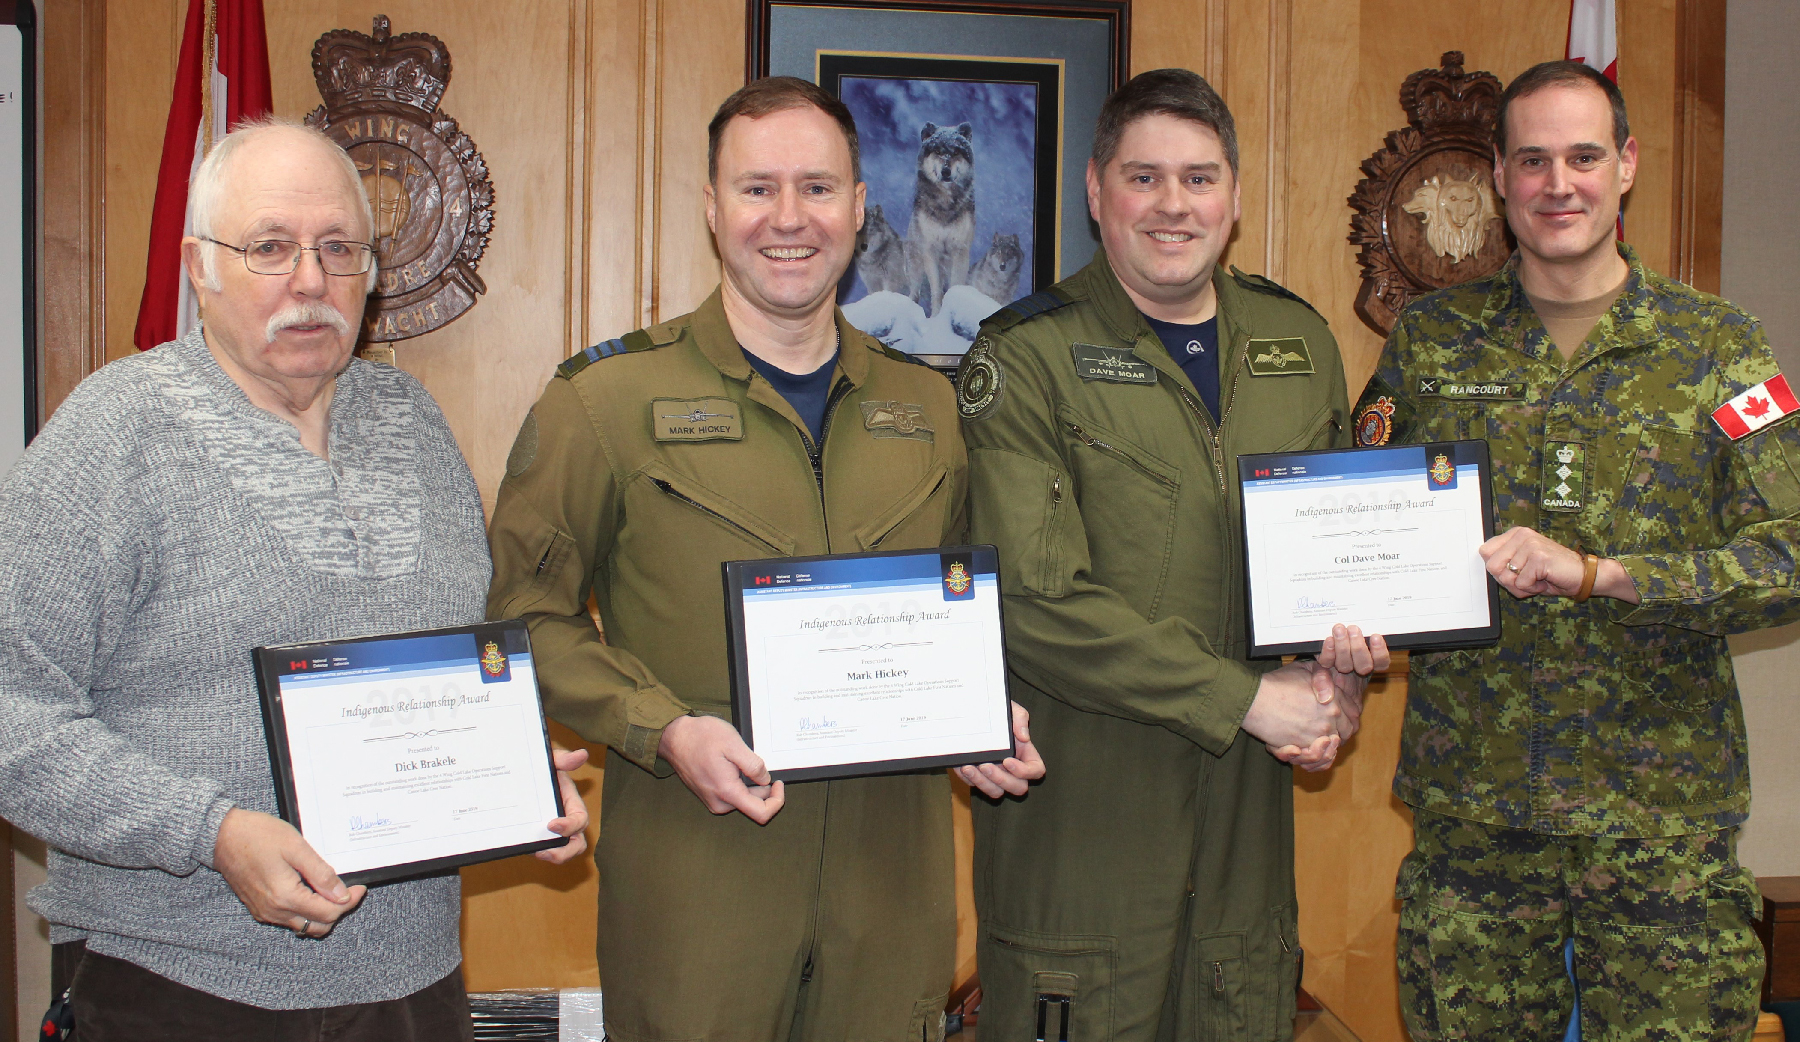 Four men, three in uniform and one in civilian dress, stand in a row holding certificates.